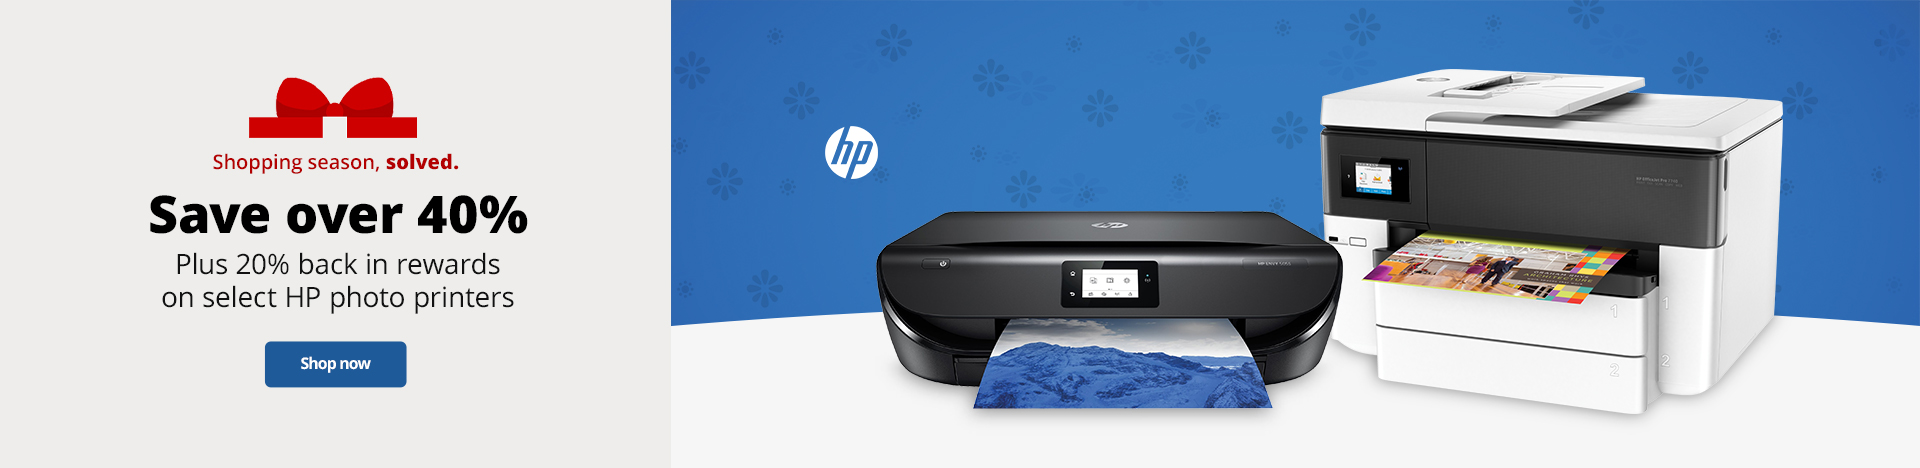 Save over 40% Plus 20% back in rewards on select HP photo printers